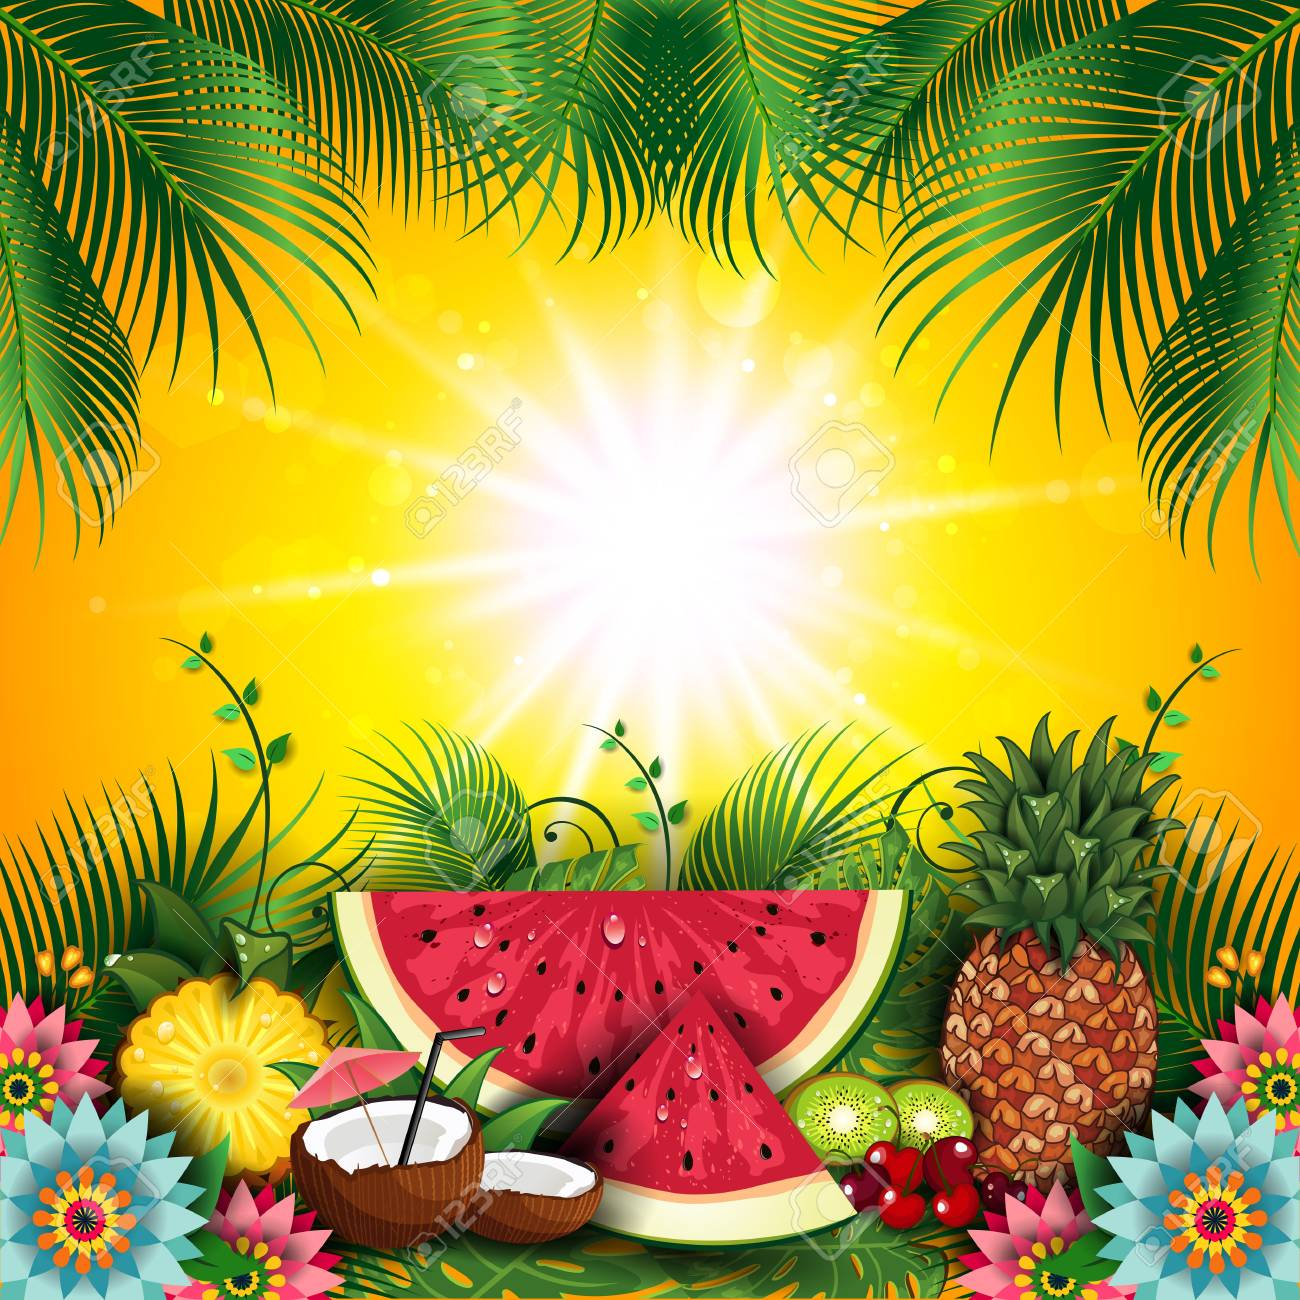 fruits summer tropical editable with space to insert your own